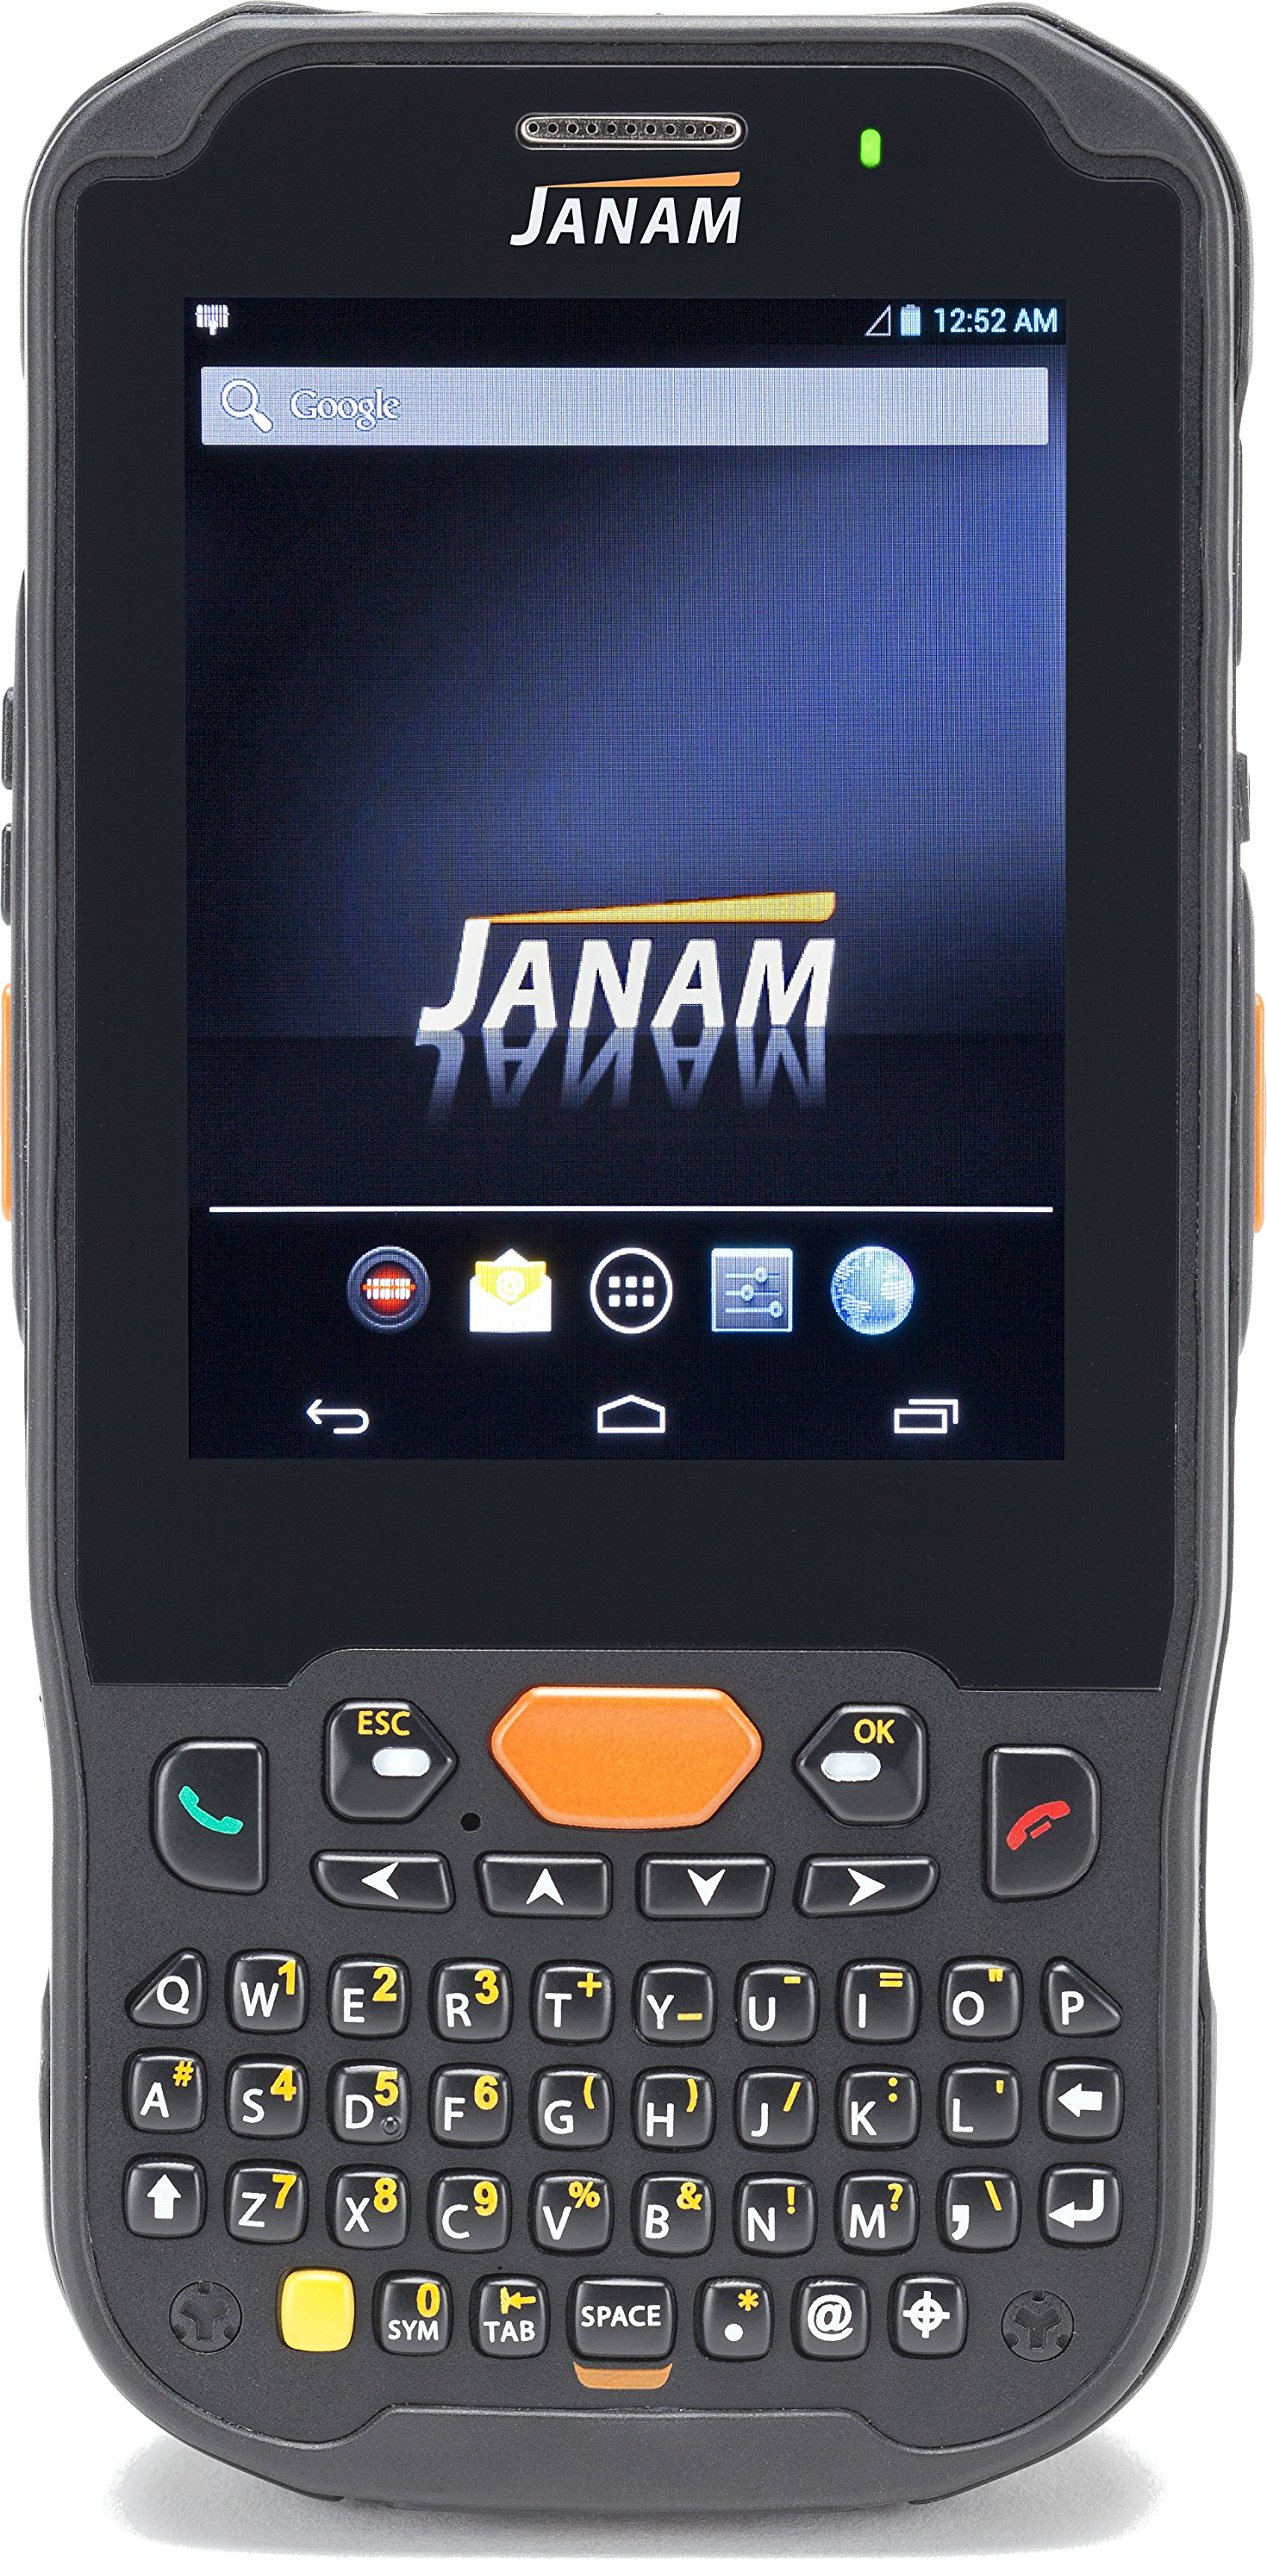 Janam XM5-ZQXANDNV00 Series XM5 Handheld Computing Devices, Android JB 4.2, 1D Laser Scanner, Bluetooth, Camera, 4000 mAh, Qwerty Keypad